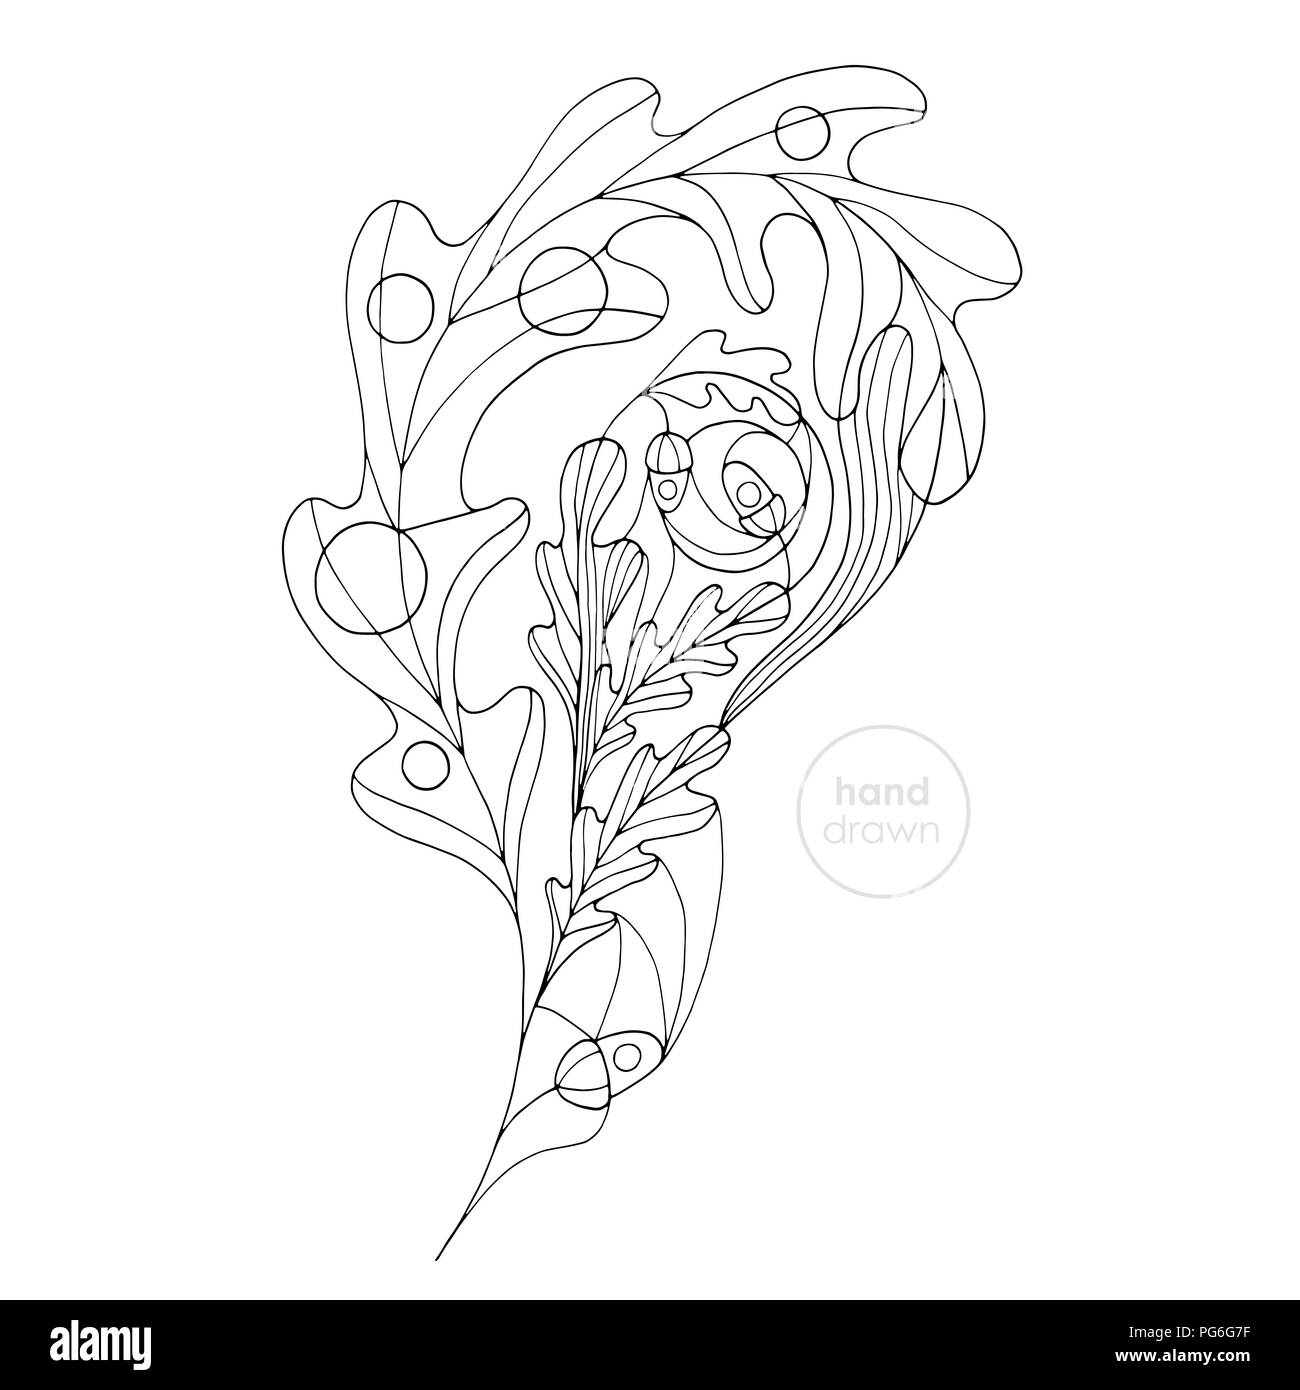 Hand drawn oak leaf vector coloring book. Abstract autumn paisley illustration. Leaves design element in modern style. - Stock Image